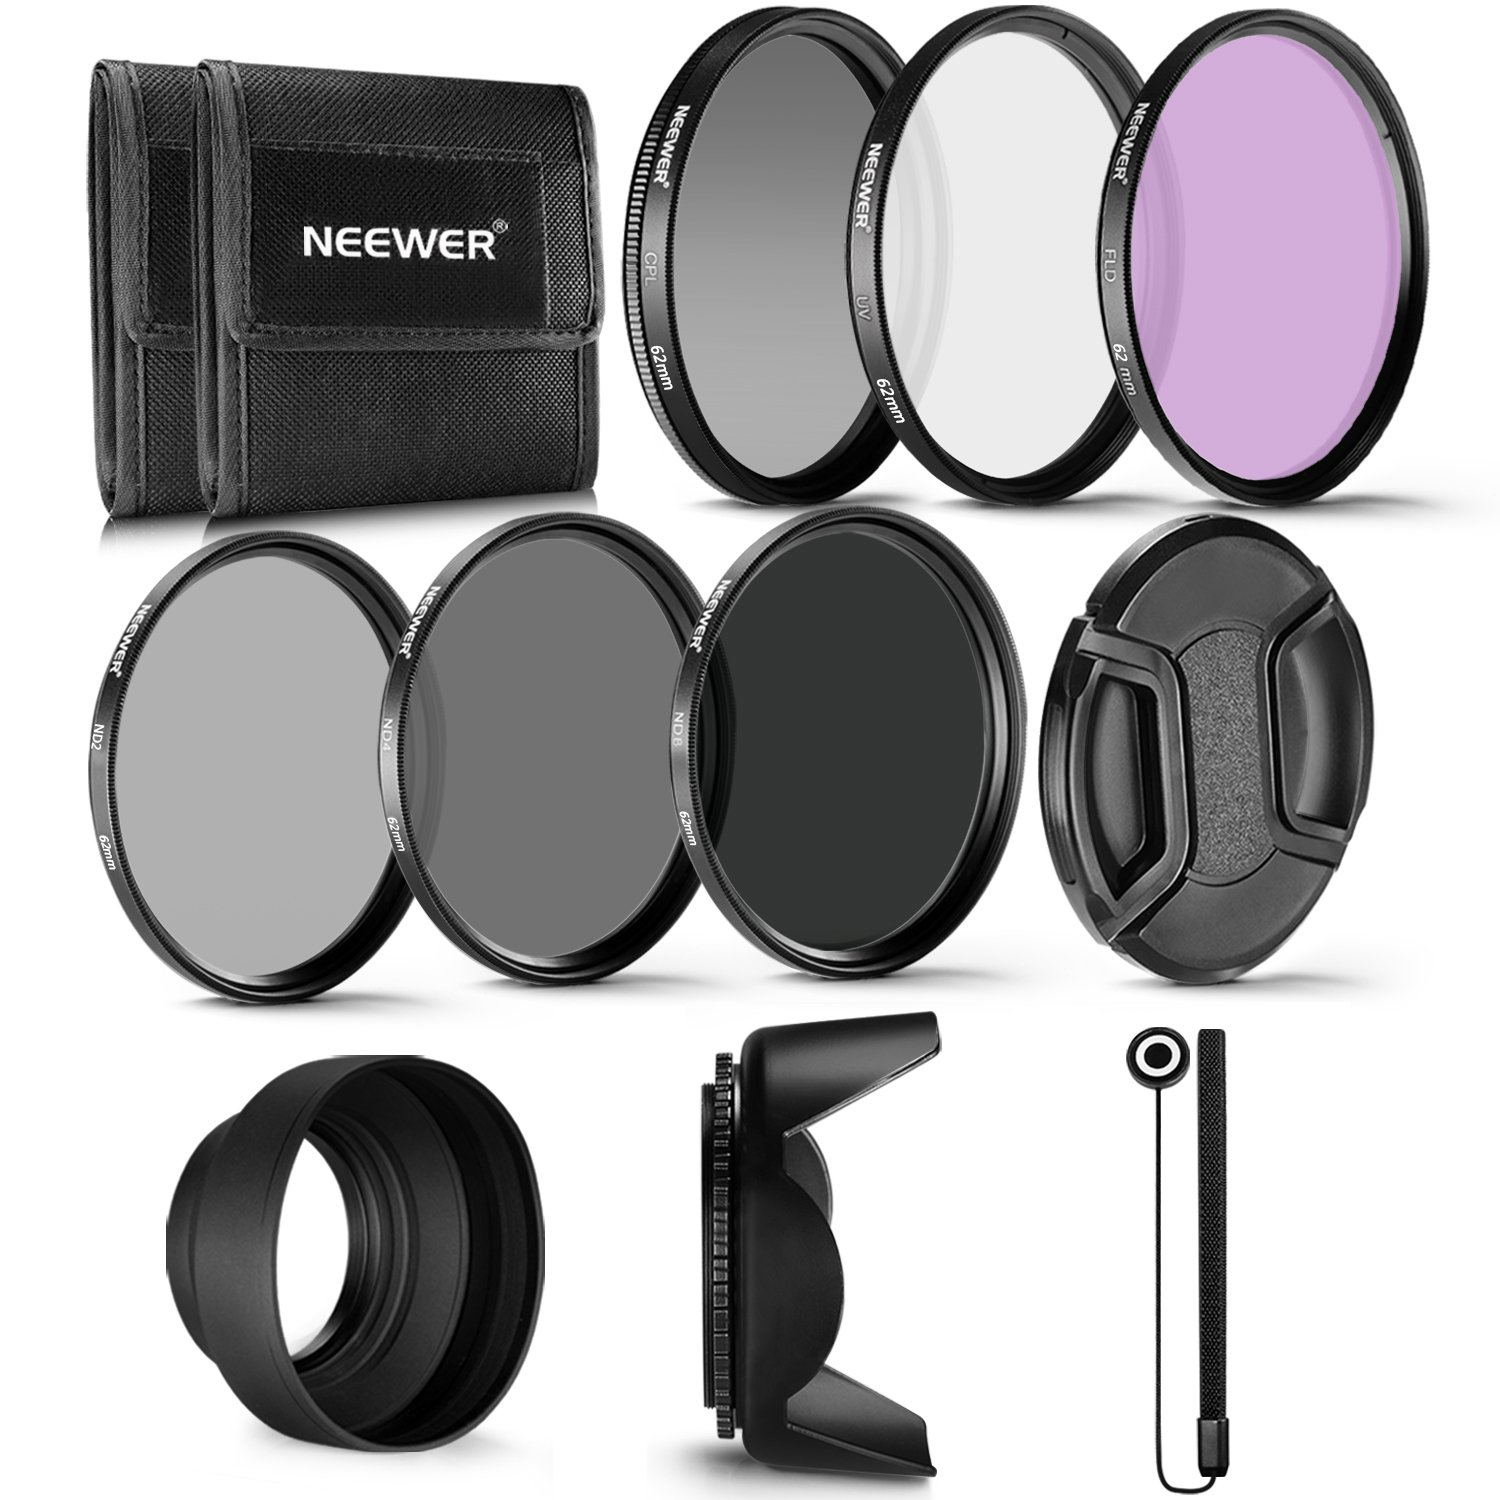 Neewer 62MM Professional UV CPL FLD Lens Filter and ND Neutral Density Filter(ND2, ND4, ND8) Accessory Kit for Pentax (K-30 K-50 K-5 K-5) and Sony Alpha A99 A77 A65 by Neewer